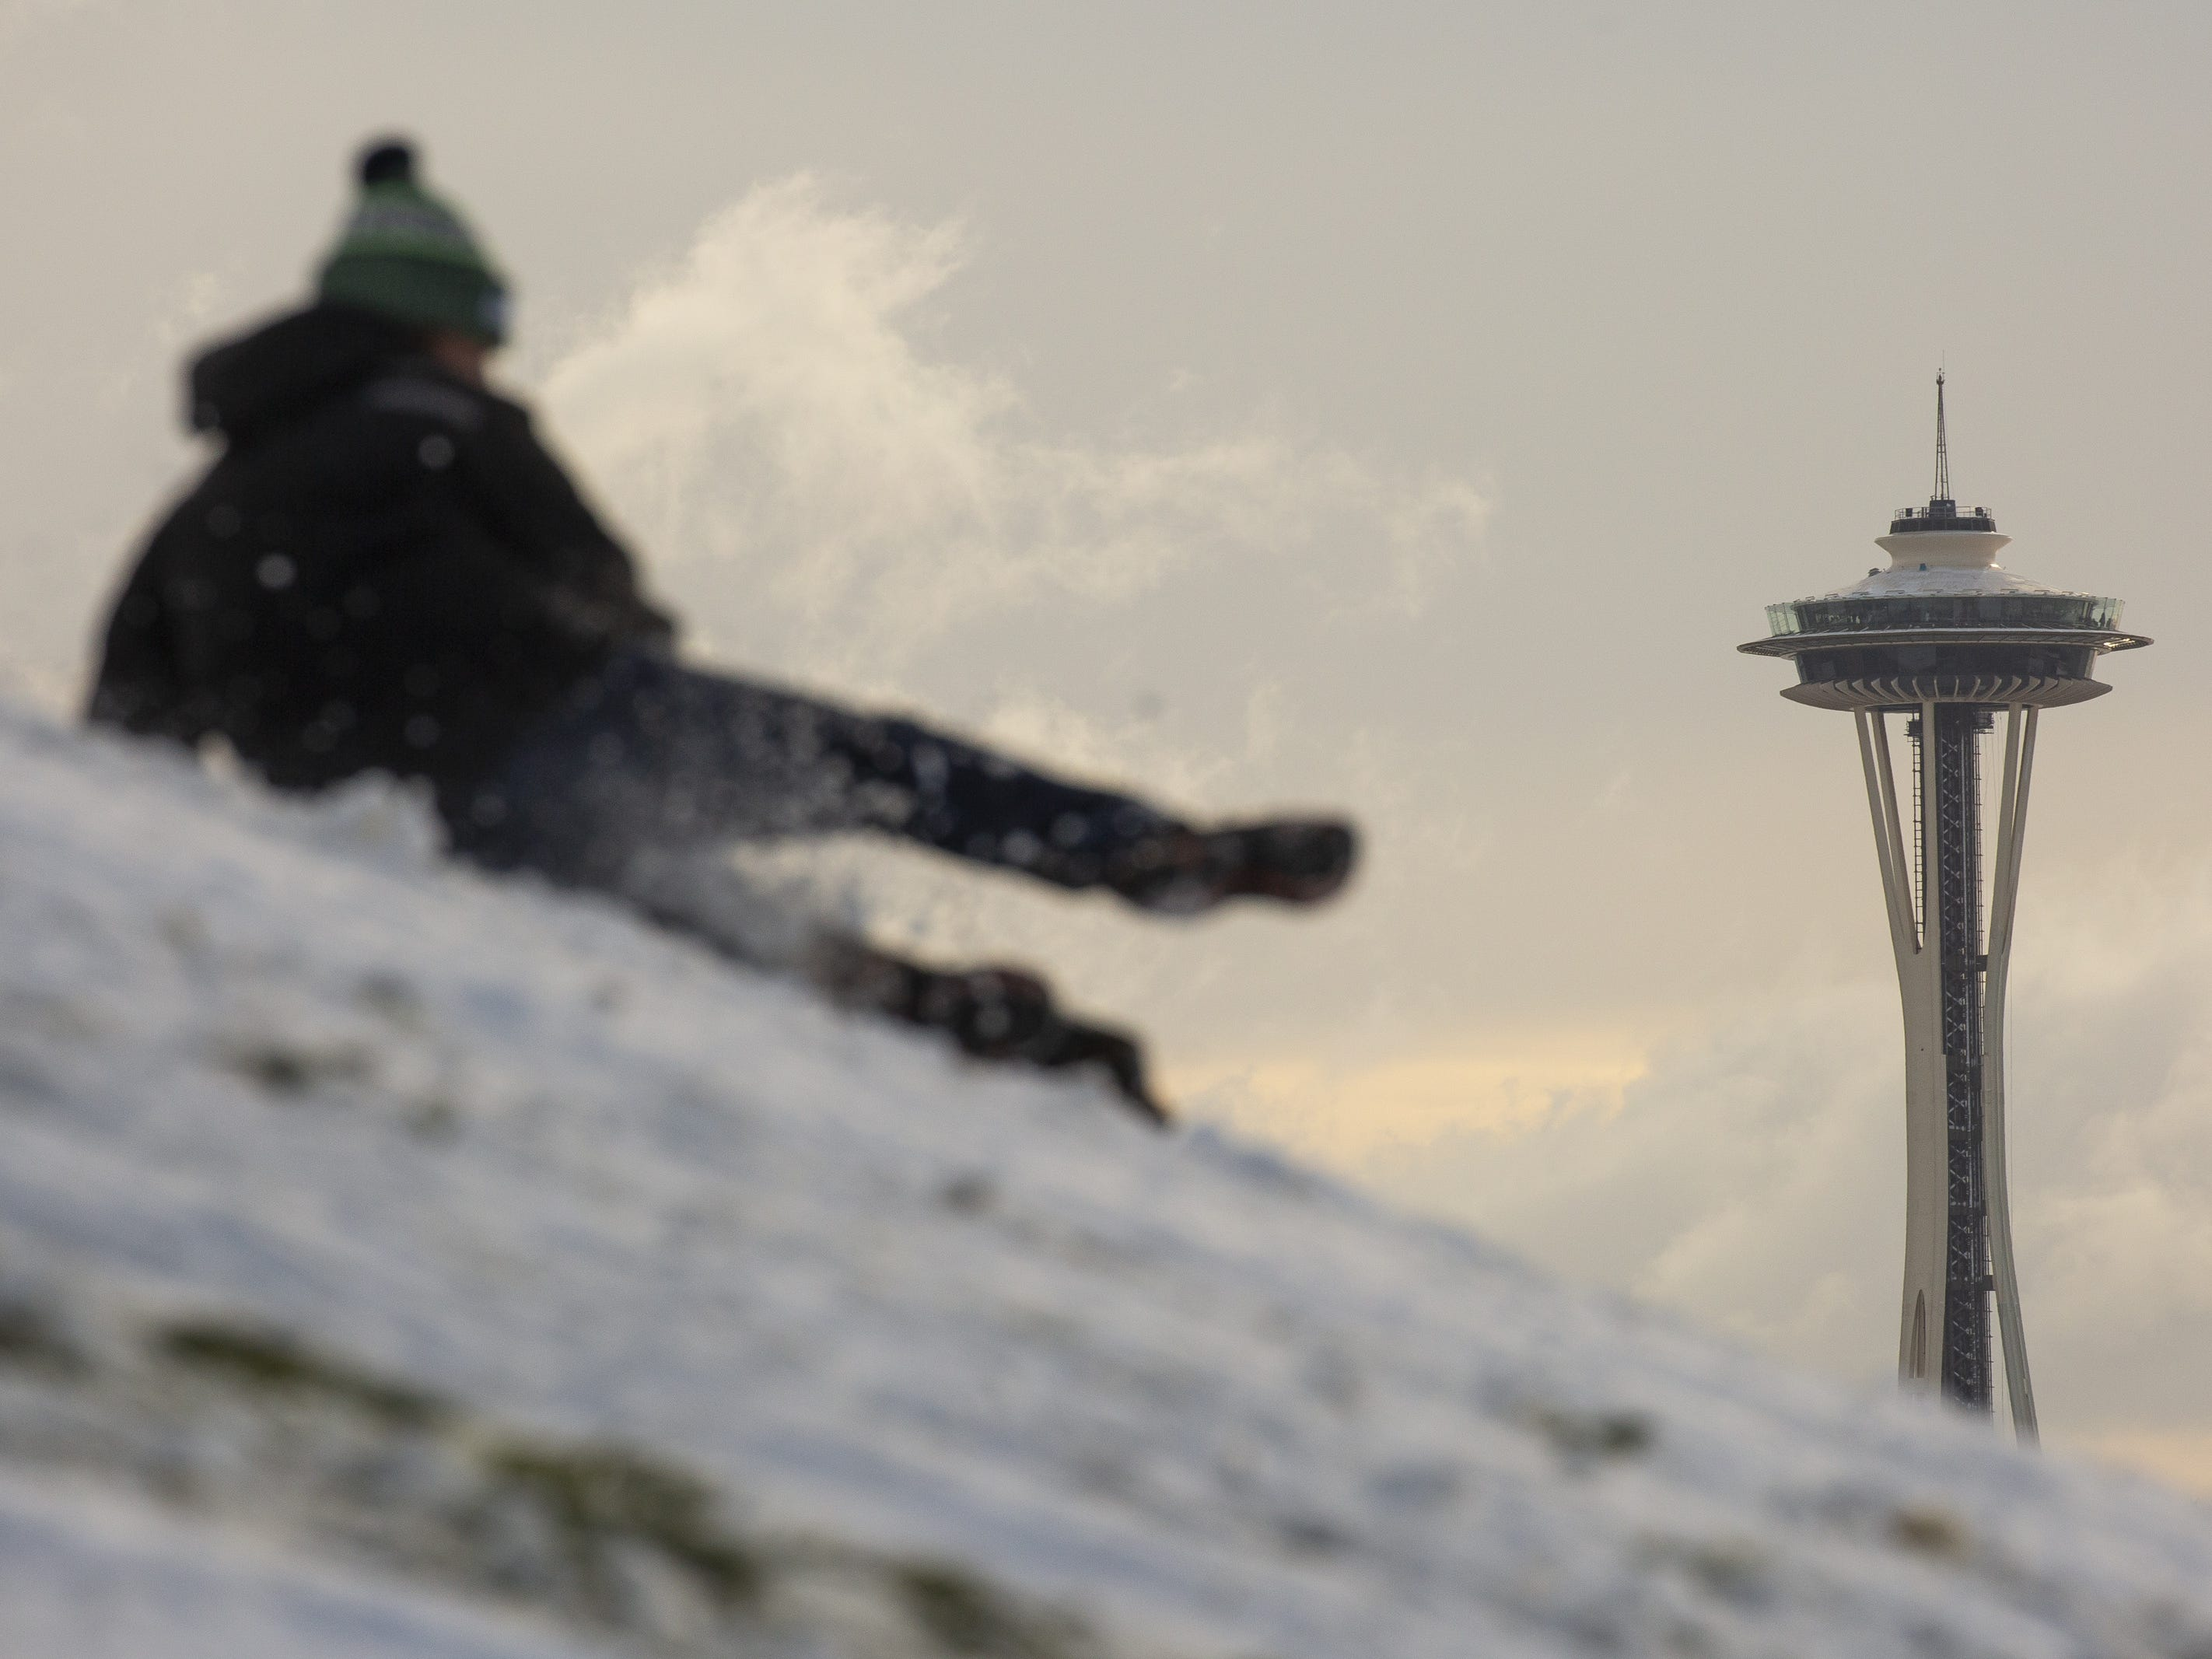 The Space Needle is pictured in the background as a man sleds at Gas Works Park after a large storm blanketed the city with snow on February 9, 2019 in Seattle, Washington.